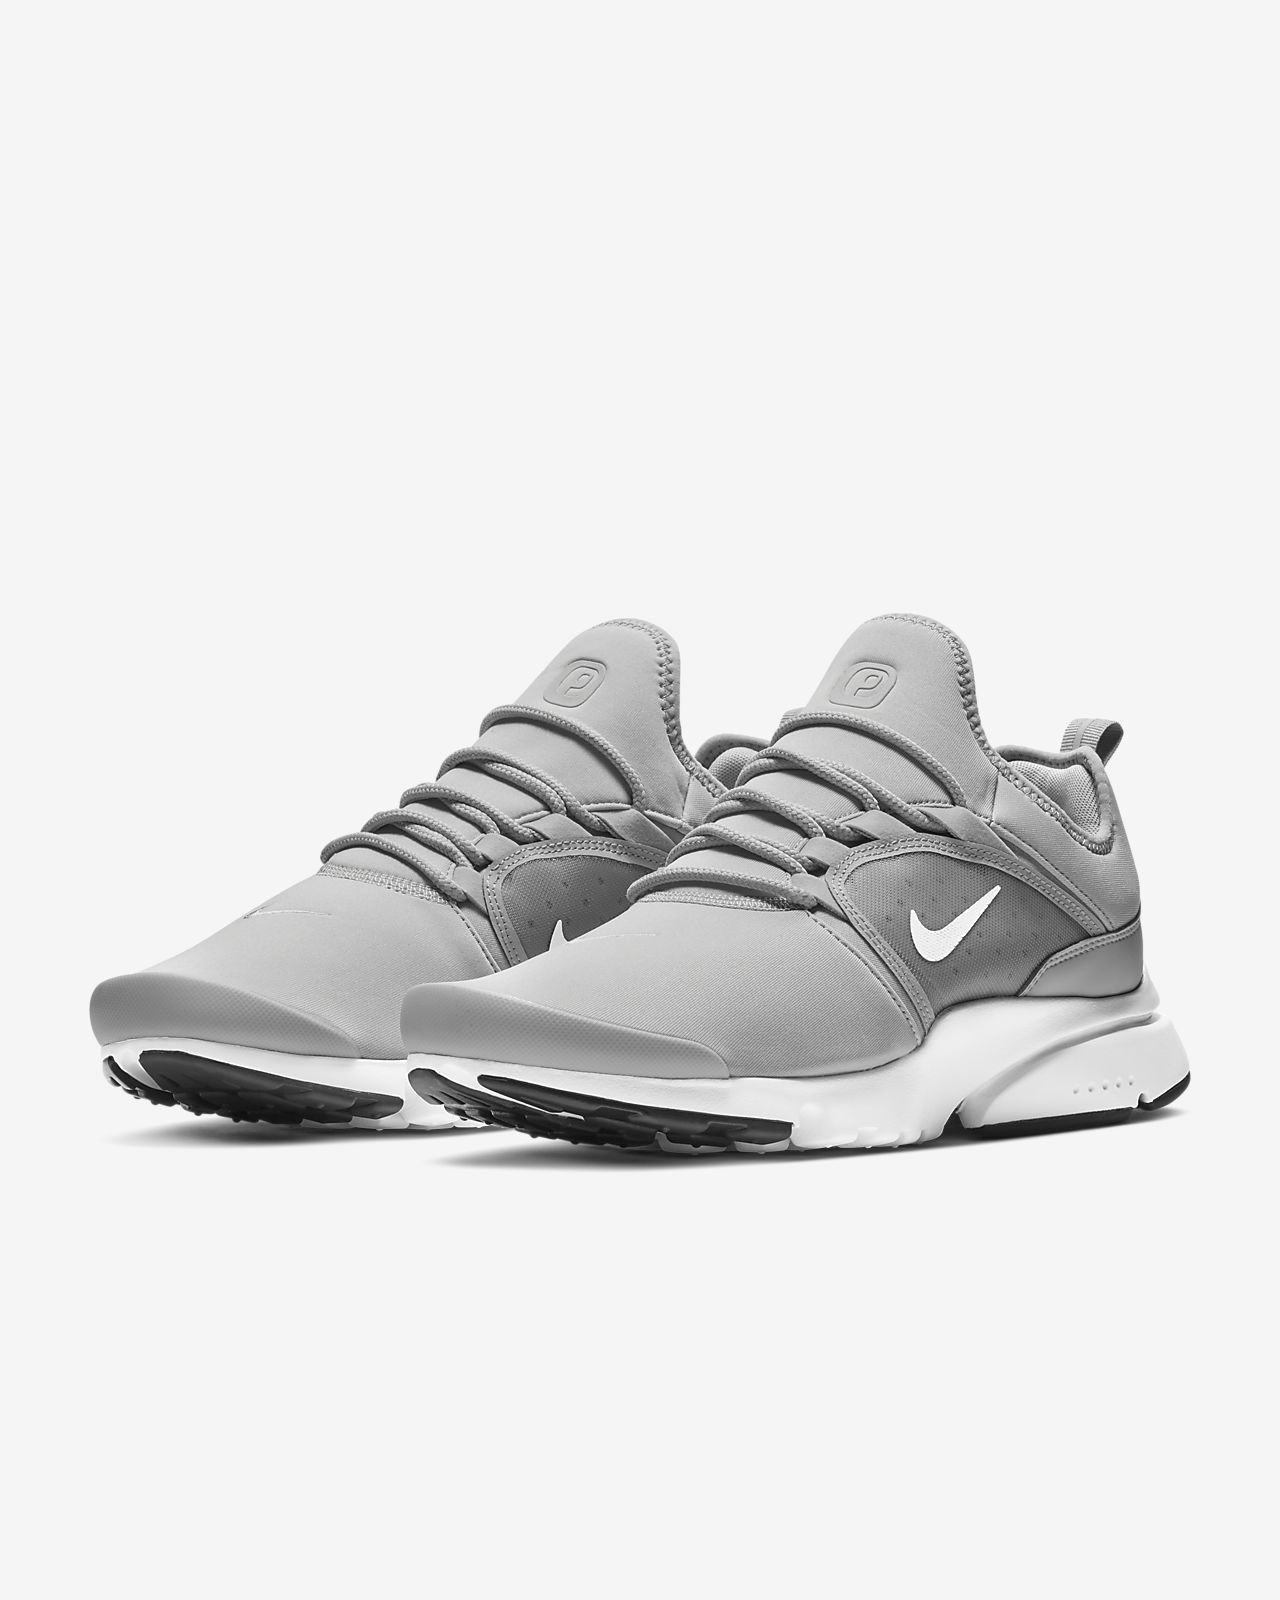 exquisite style autumn shoes special for shoe Chaussure World Nike Presto HommeFr Pour Fly zpMVSU